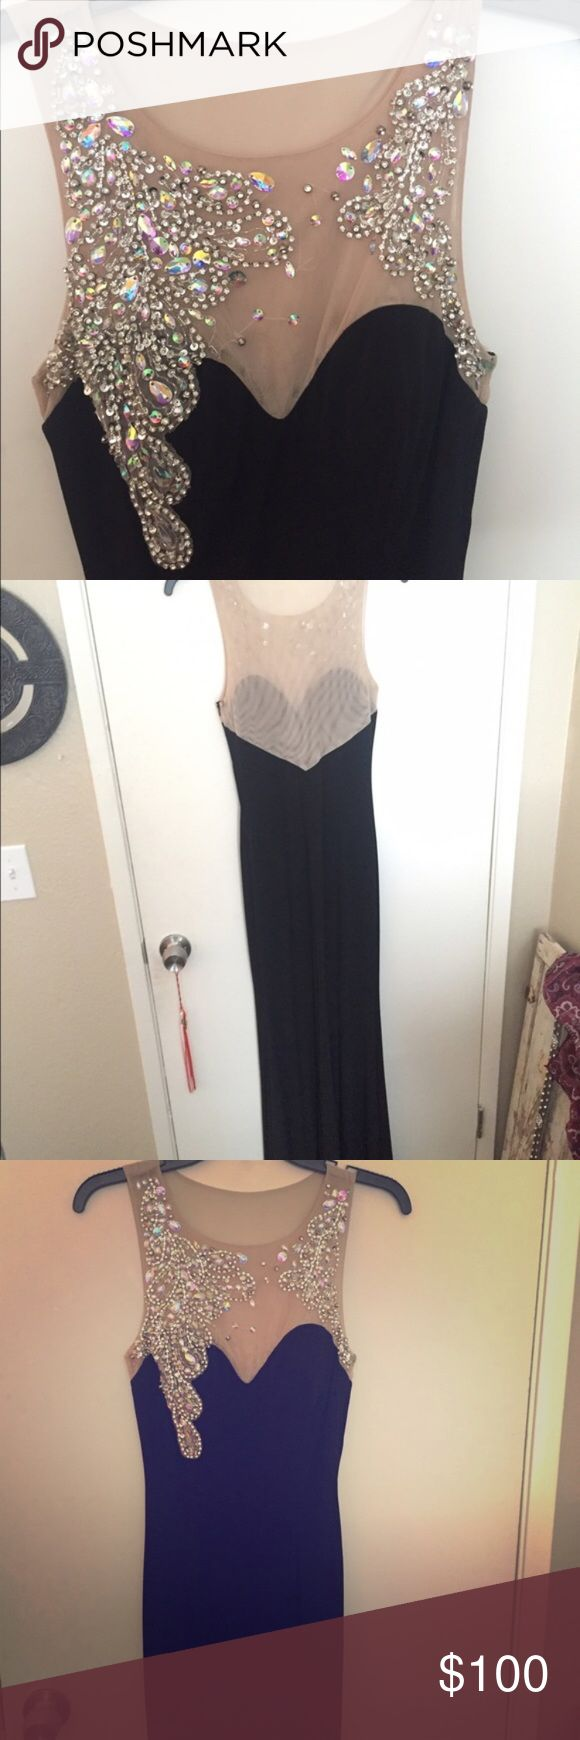 Never Worn Size 5 Black Prom Dress w\ Jewels NEVER WORN! Size 5 (wasn't an option on sizing here so I put a 6) body fitted mermaid style Beautiful black prom dress with a nude skin tone mesh up top (so on skin mesh top almost disappears) and beautiful sequins and jewel design floor length black dress. Kept getting asked to have a pic of it on so people could see how the mesh looks against skin (because of how small it is on me I am afraid of ruining the dress putting it on) I ALWAYS CONSIDER…